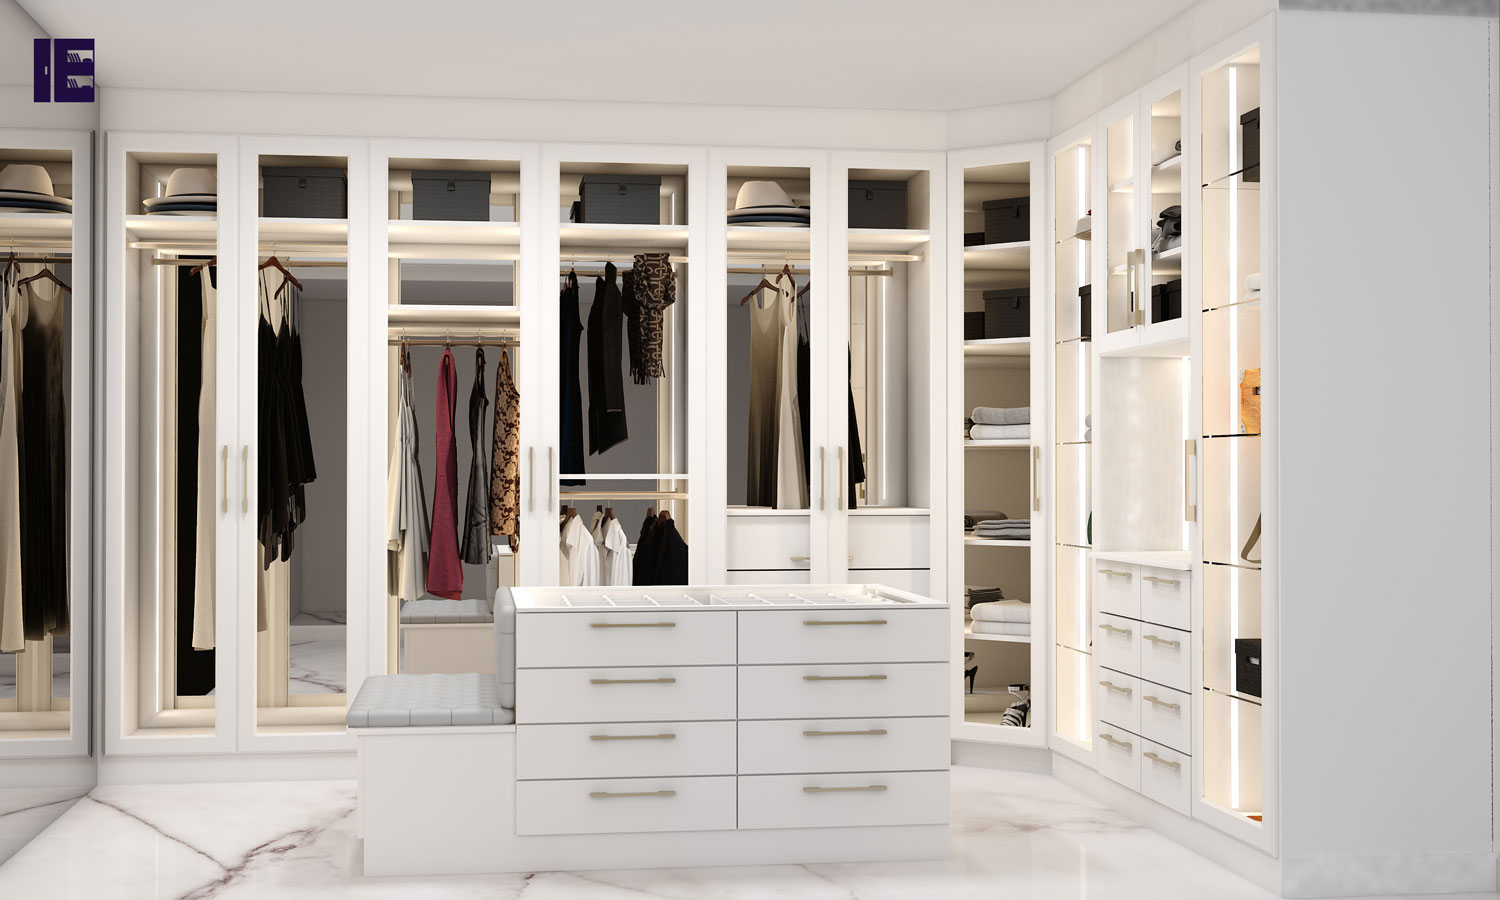 Wardrobes with Glass Doors   Fitted Mirrored Wardrobes   Glass Fitted Wardrobes   Inspired Elements